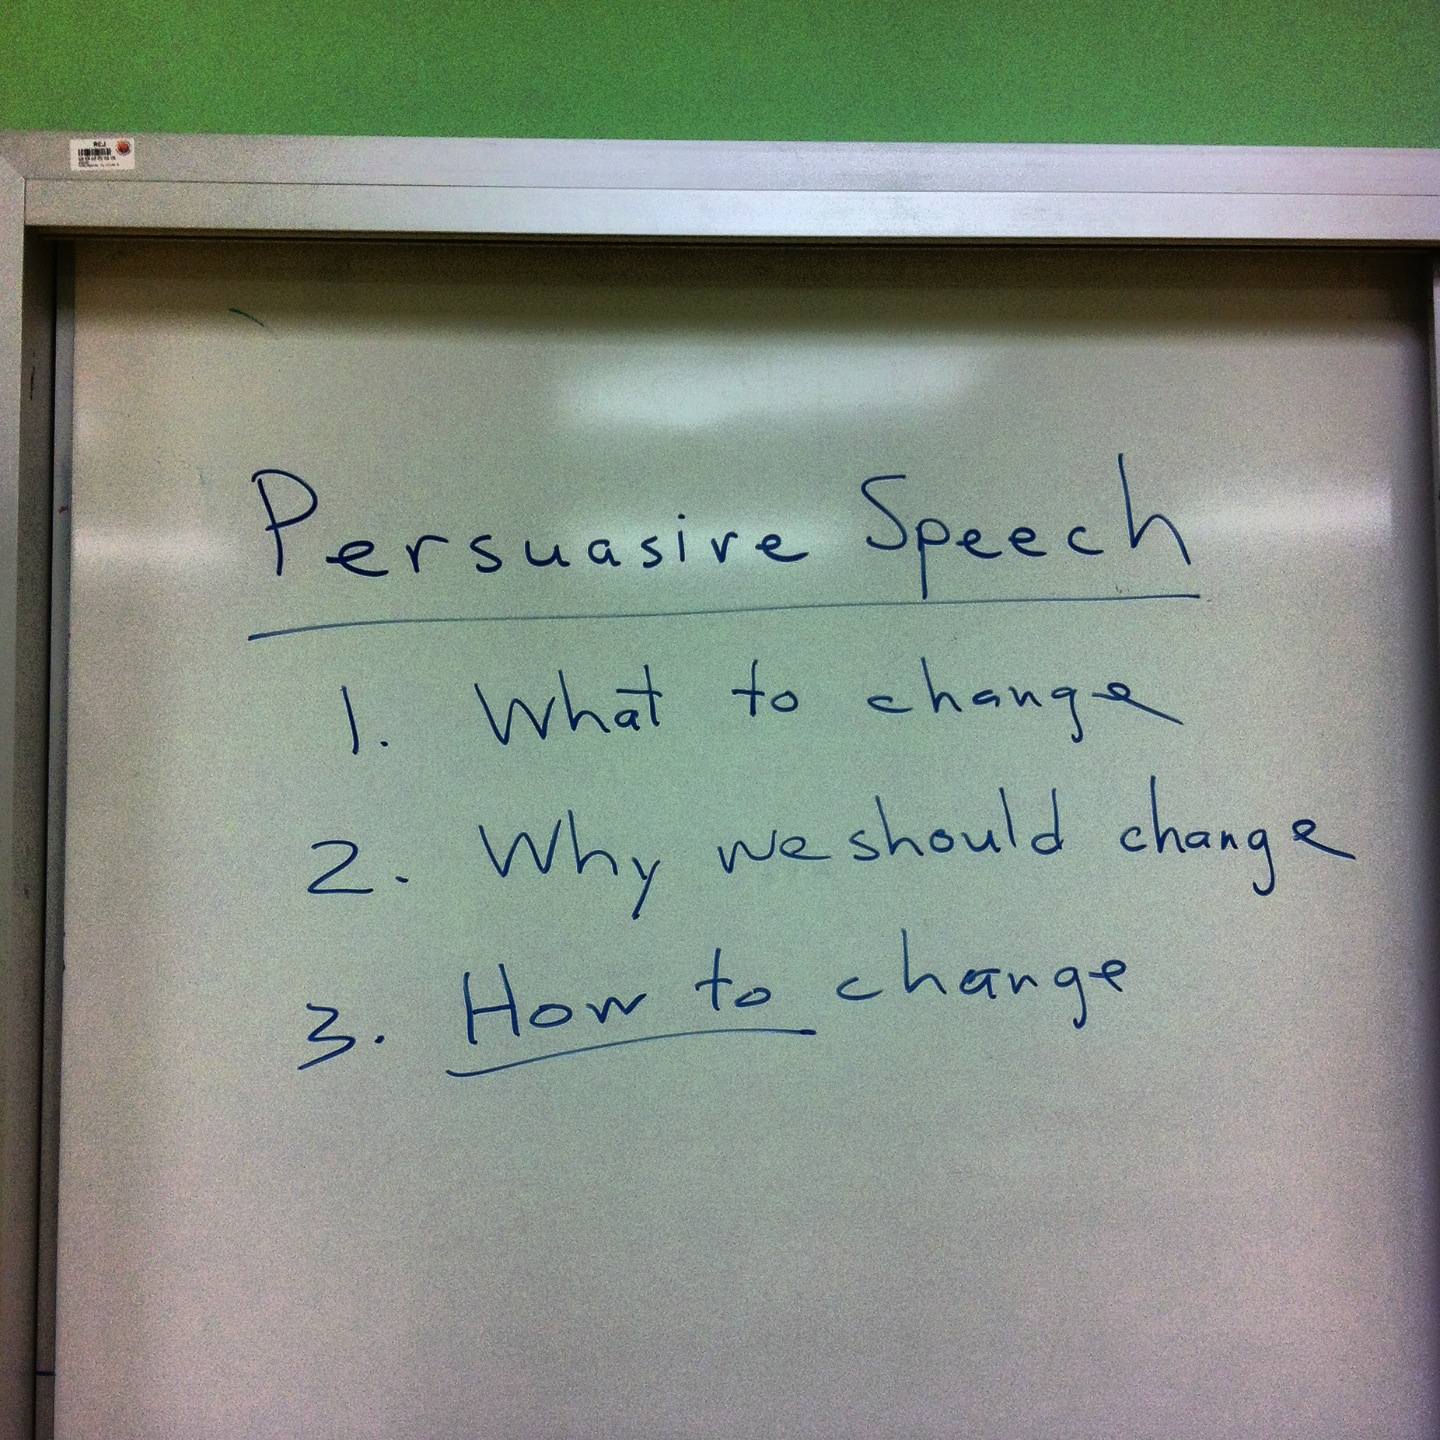 persuasive bullying monroe sequence Persuasive speech outline - nail that speech using monroe's motivated  sequence - the logical, powerful and proven 5 step pattern underpinning the  psychology.